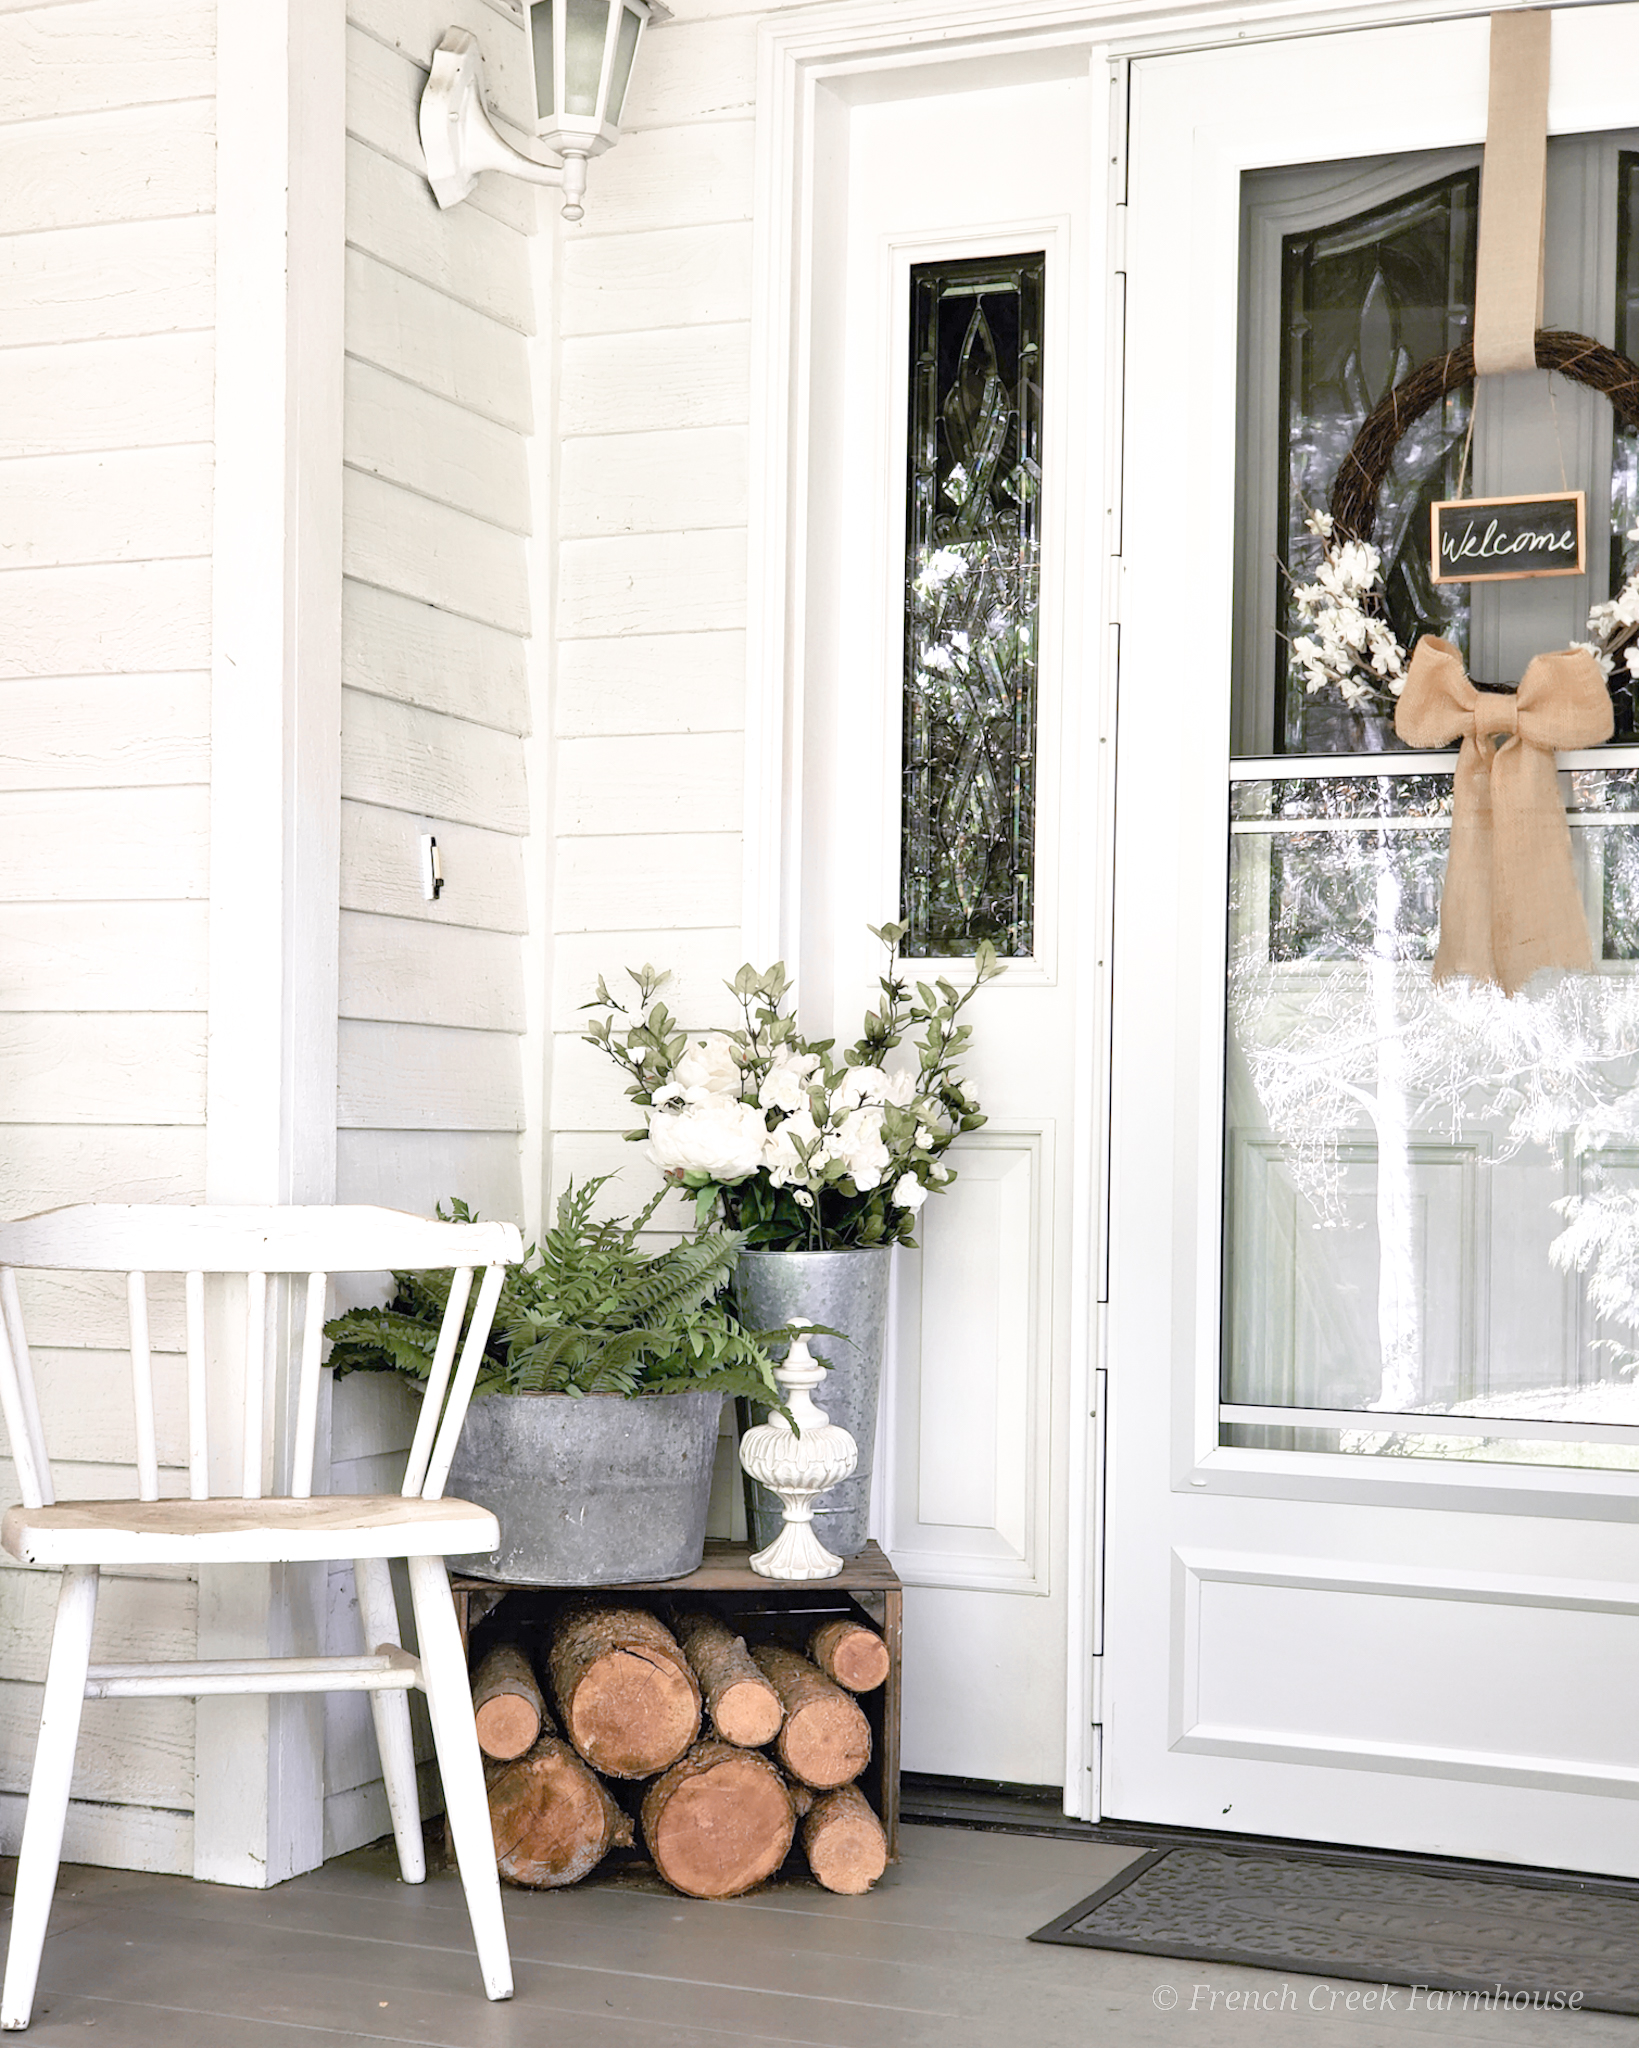 Classic farmhouse touches with loads of blooms are great inspiration for spring decor